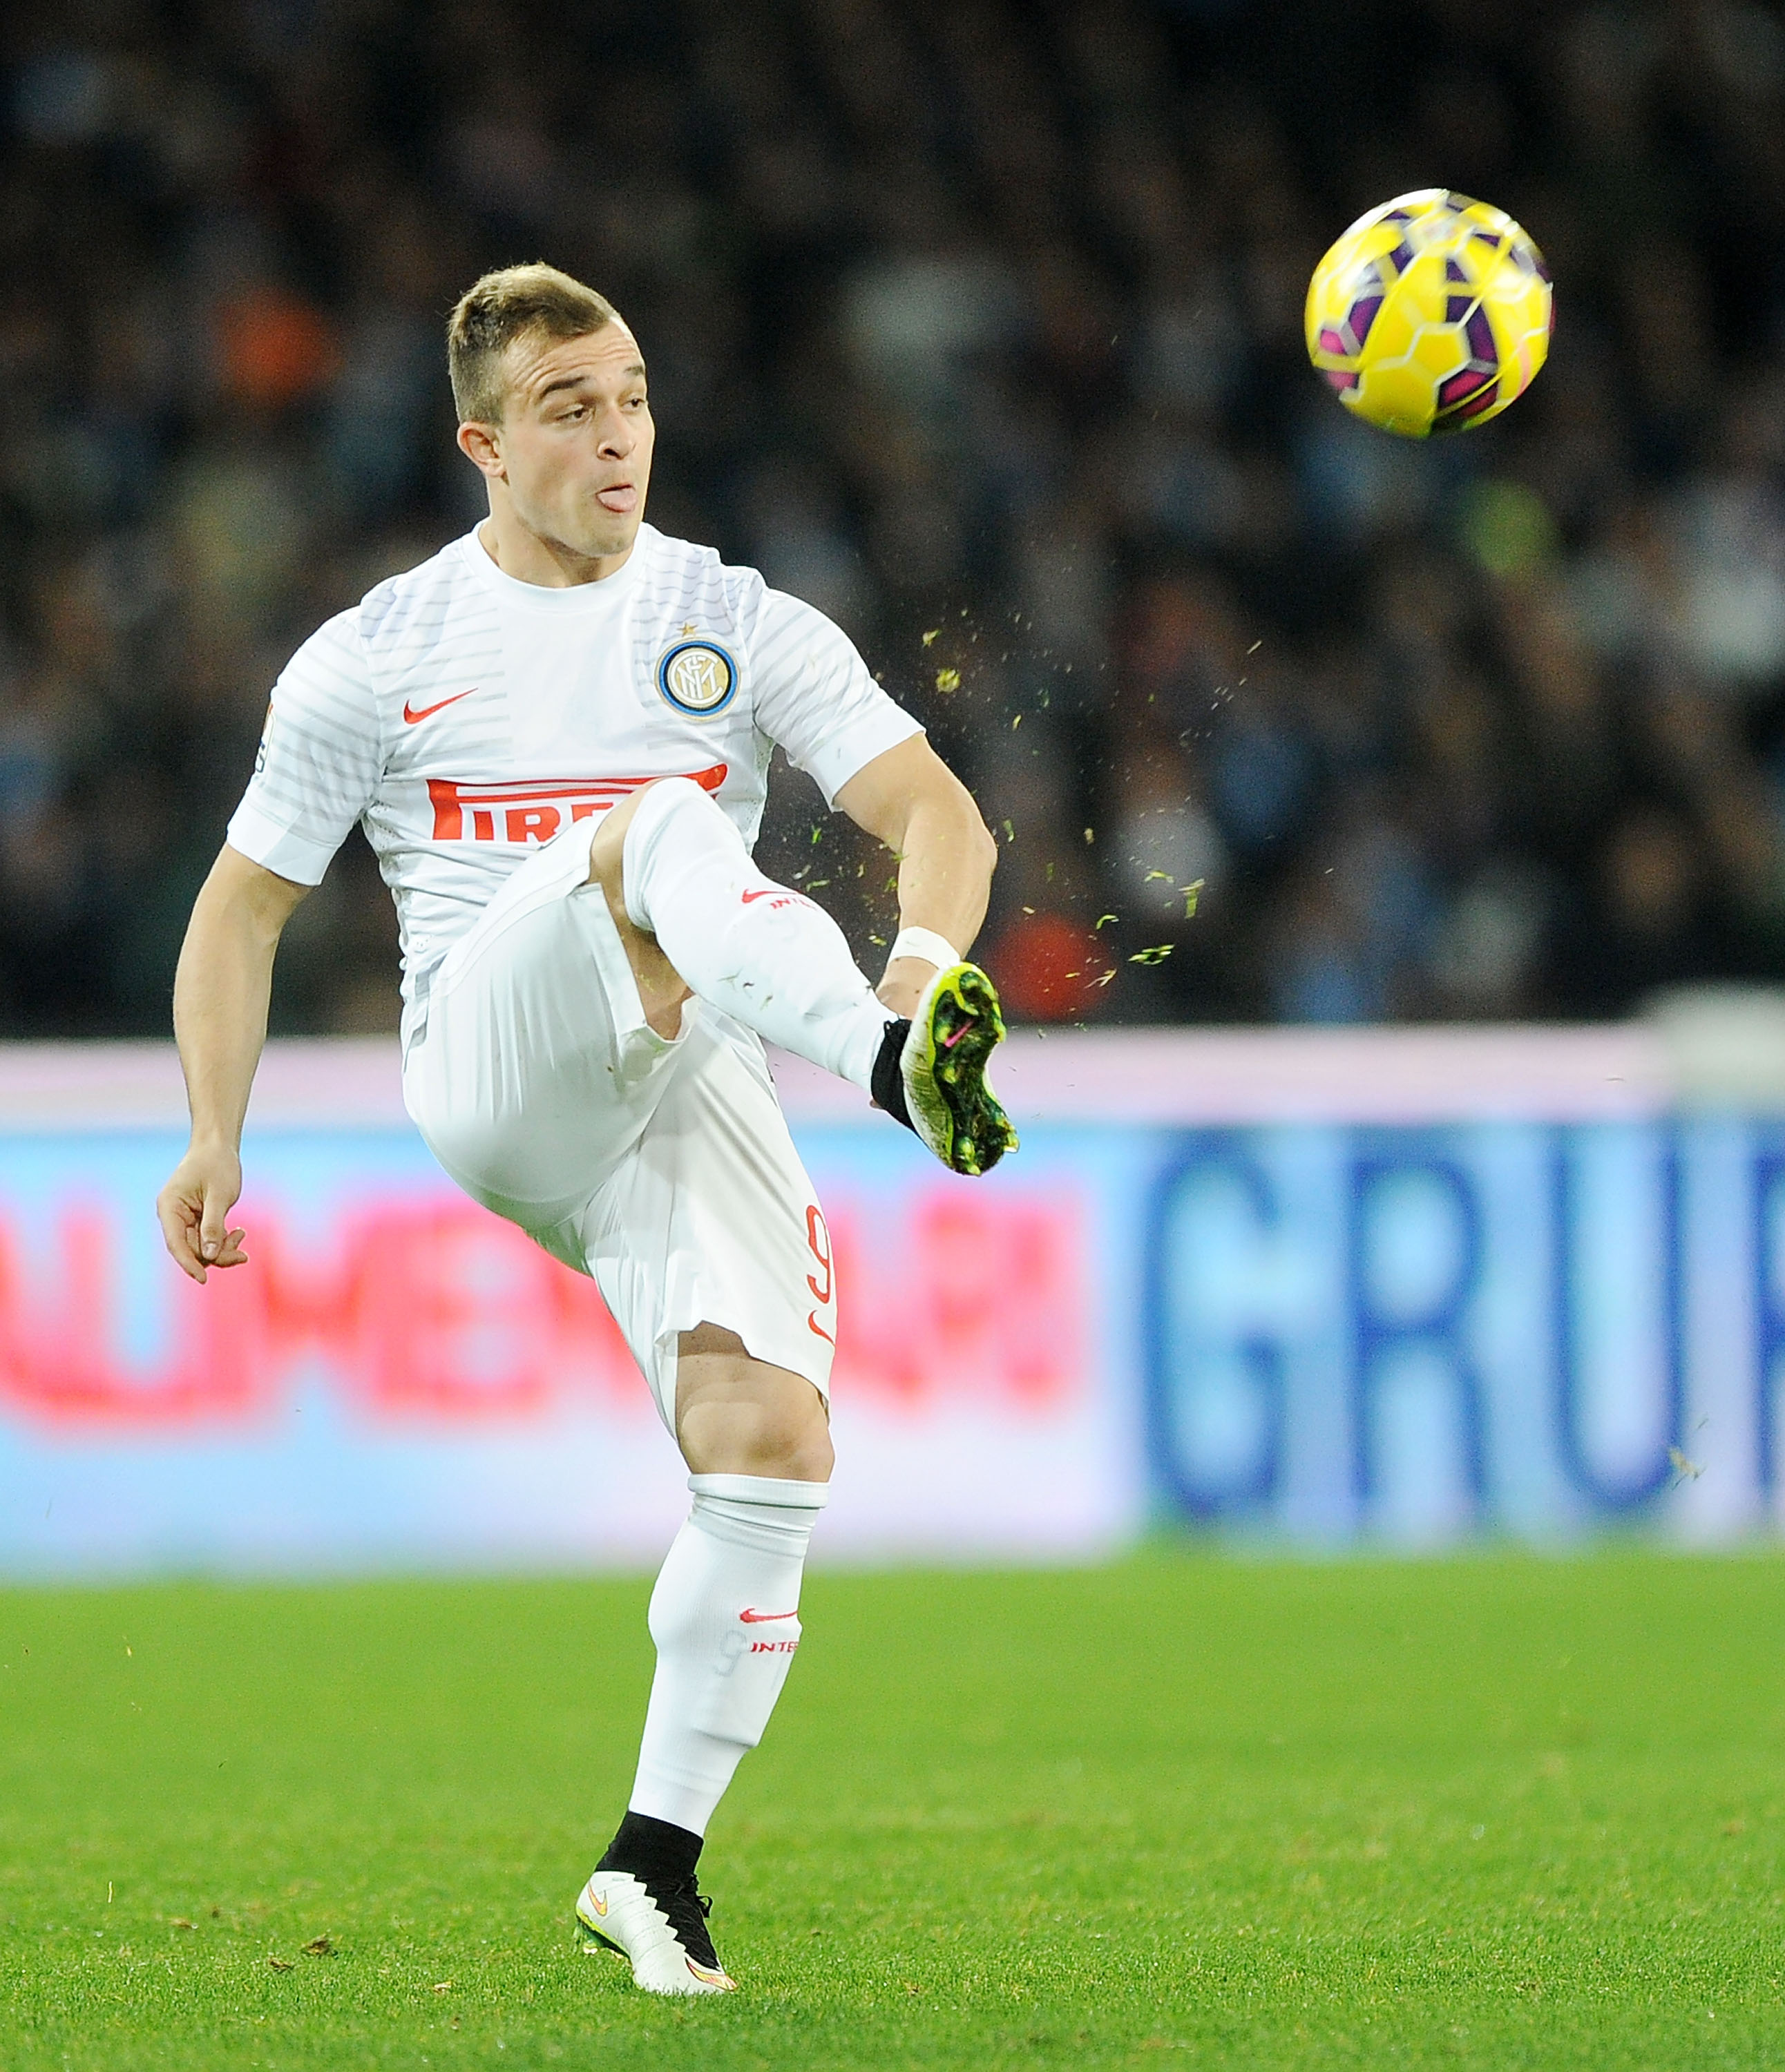 Inter V Palermo Lineups And Live Match Thread